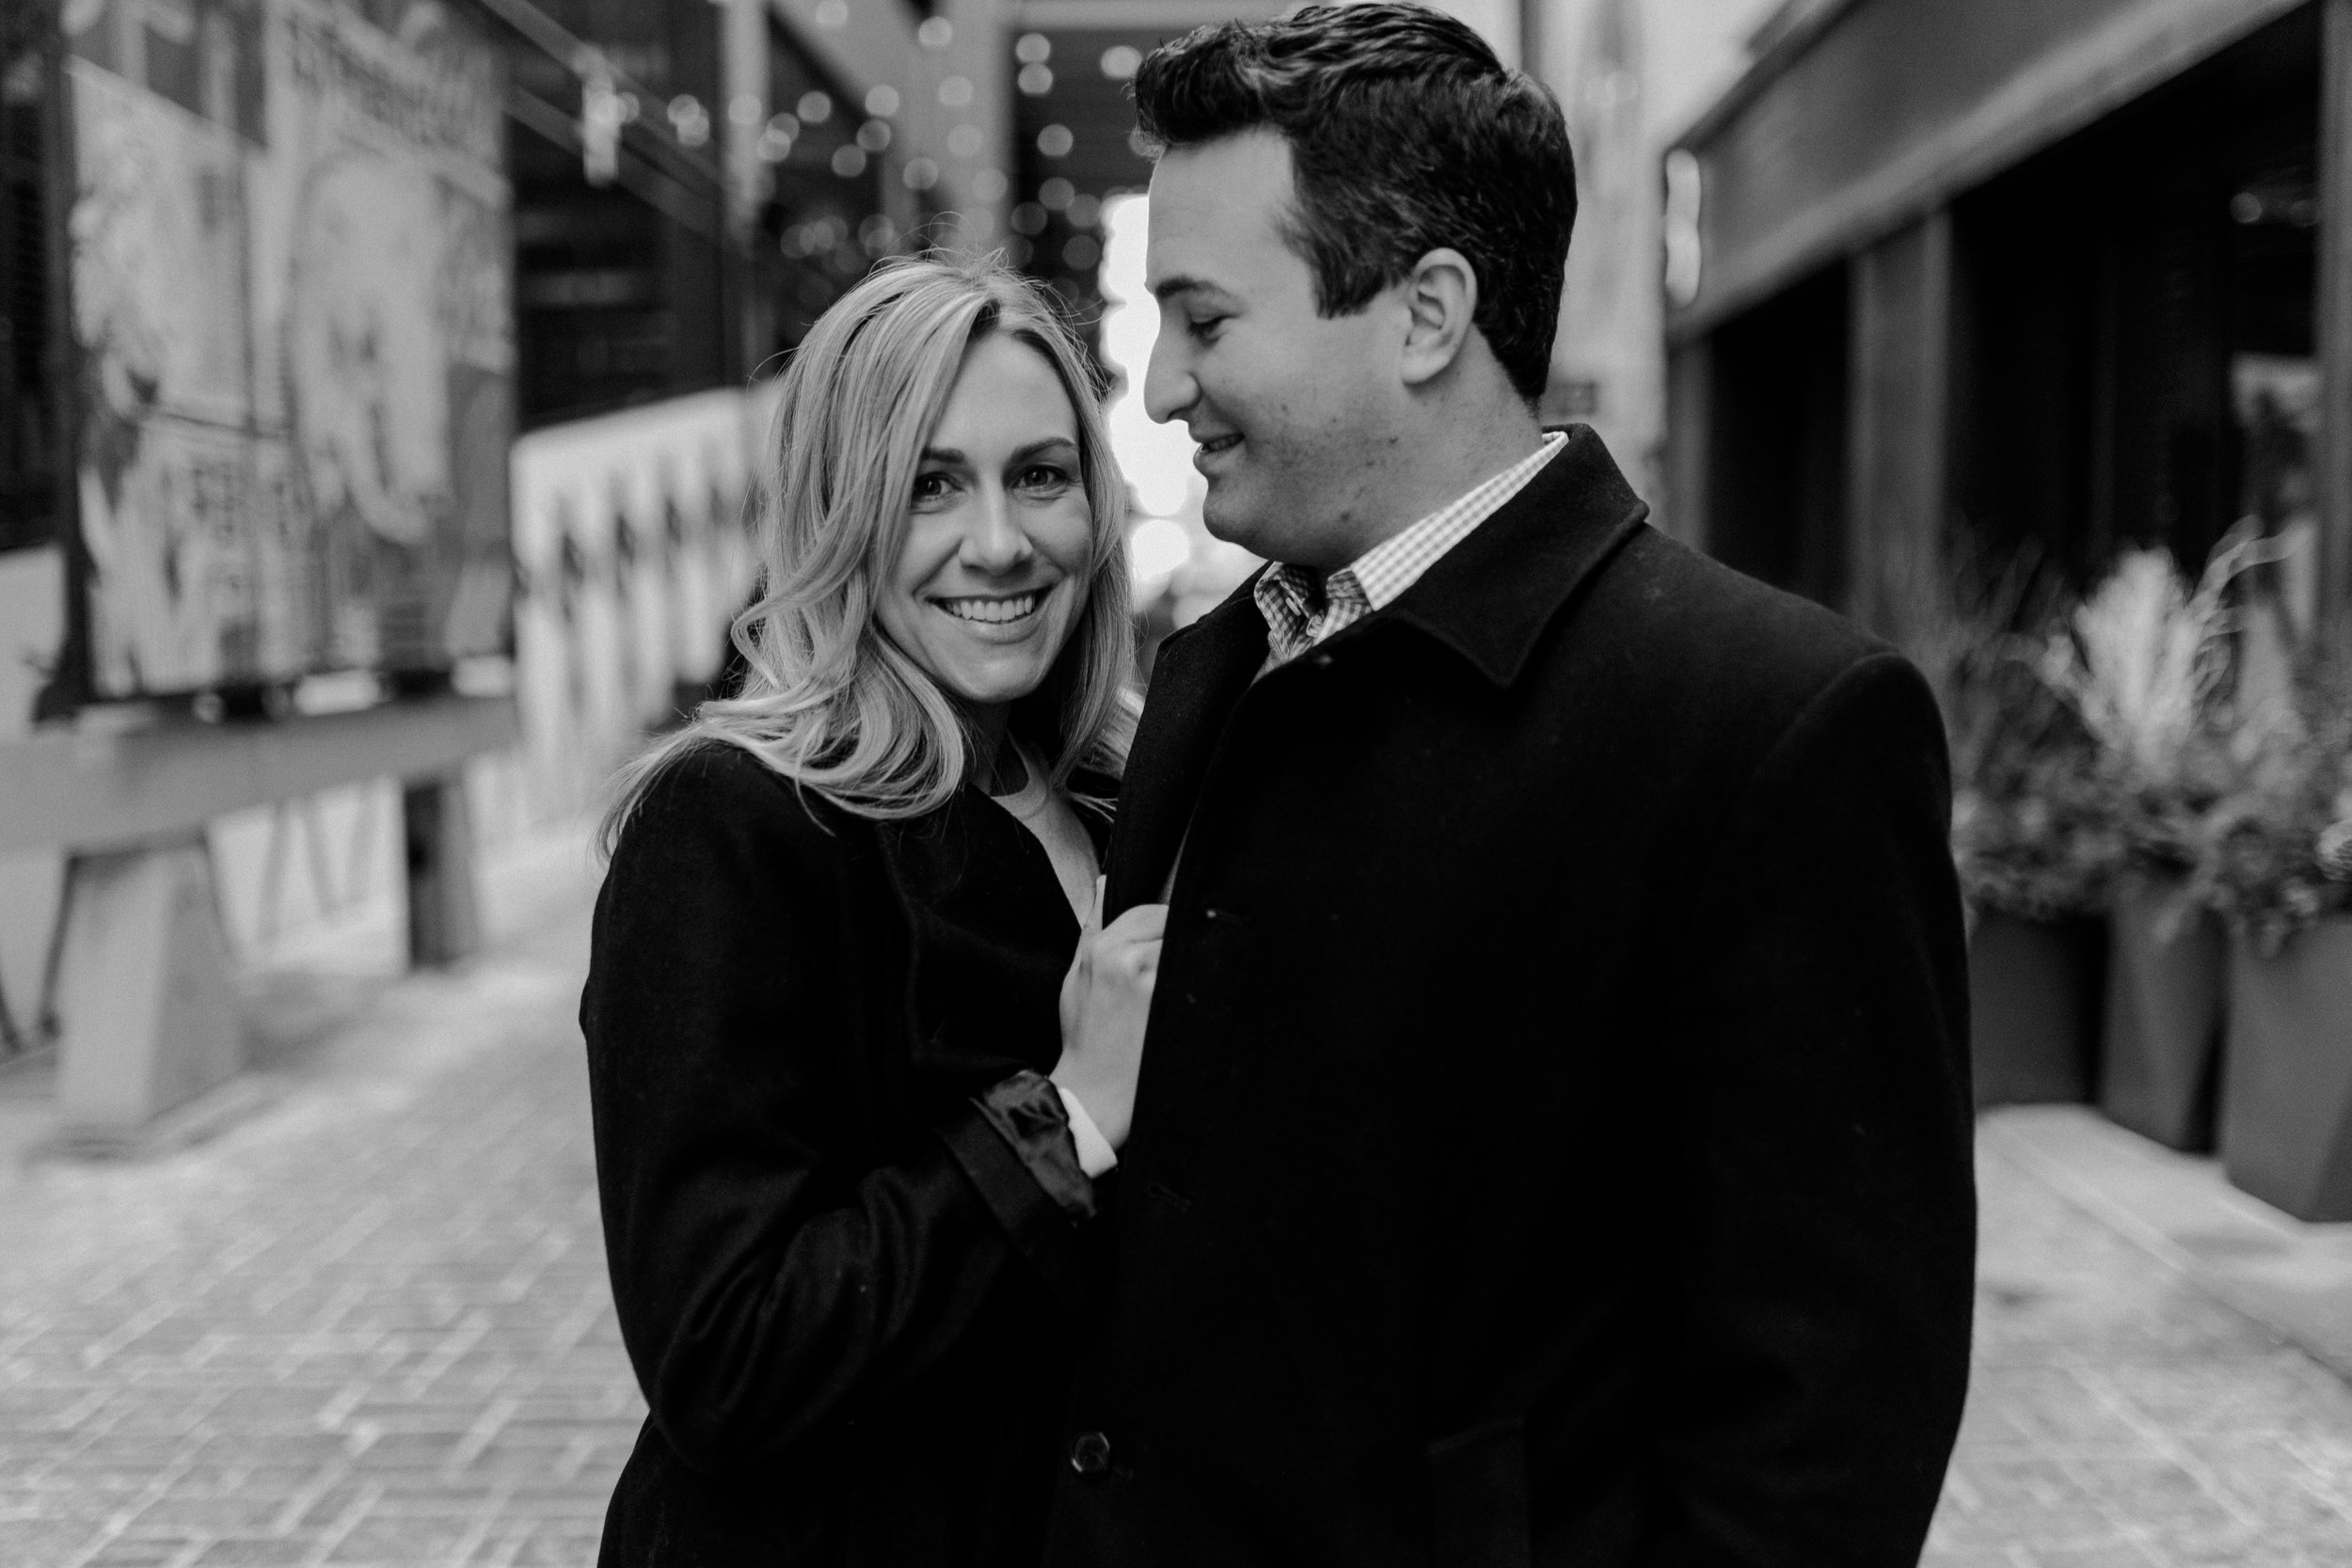 TOM + MEGAN - These two together is just the sweetest thing. We got super lucky with a warm day this past winter for Tom and Megan's engagement session downtown. We hit up all the good spots around the city. I can't wait to capture their wedding day this October!